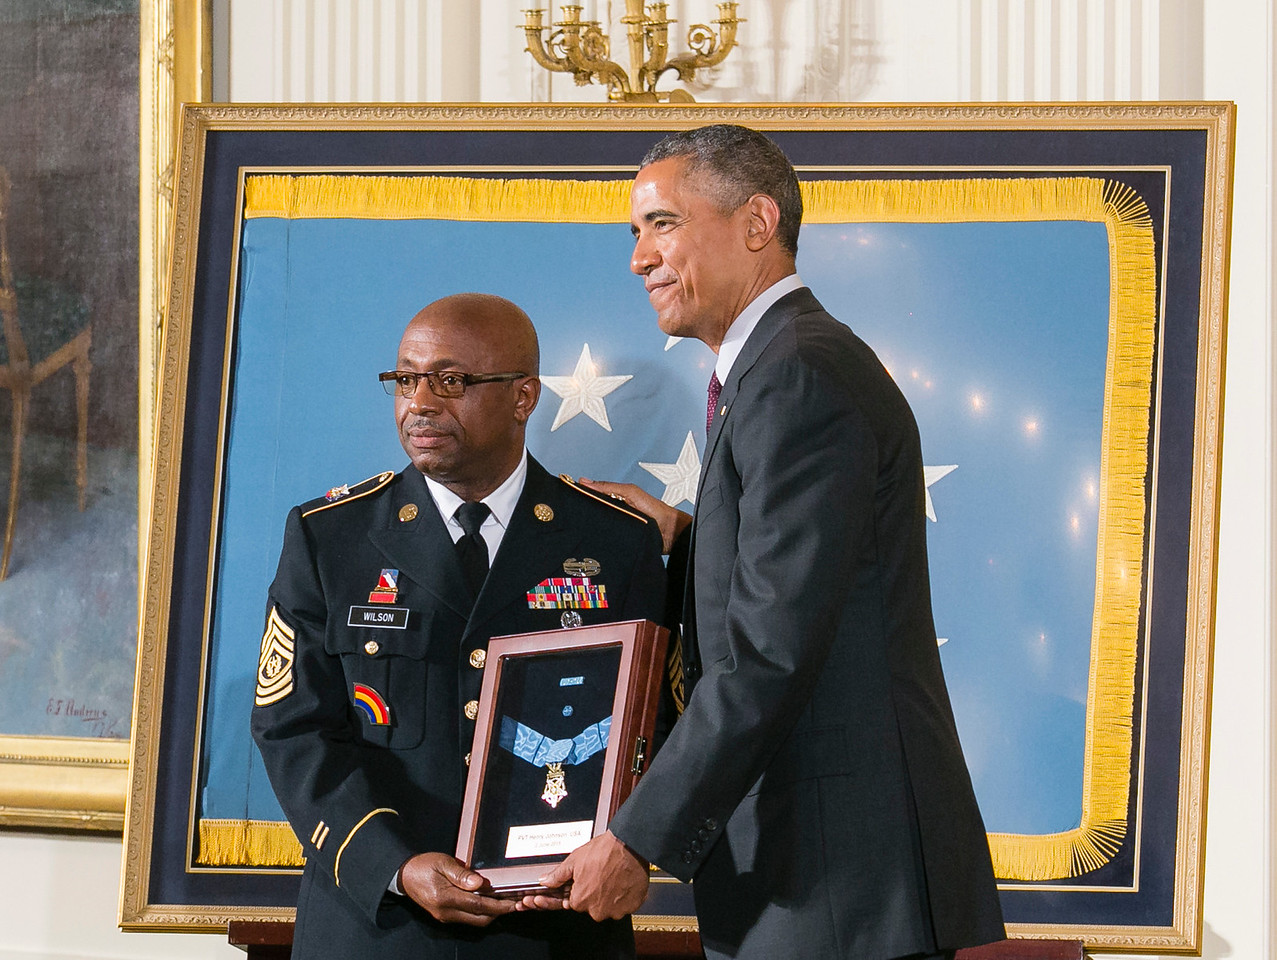 Sgt. Major Louis Wilson accepts the Medal of Honor